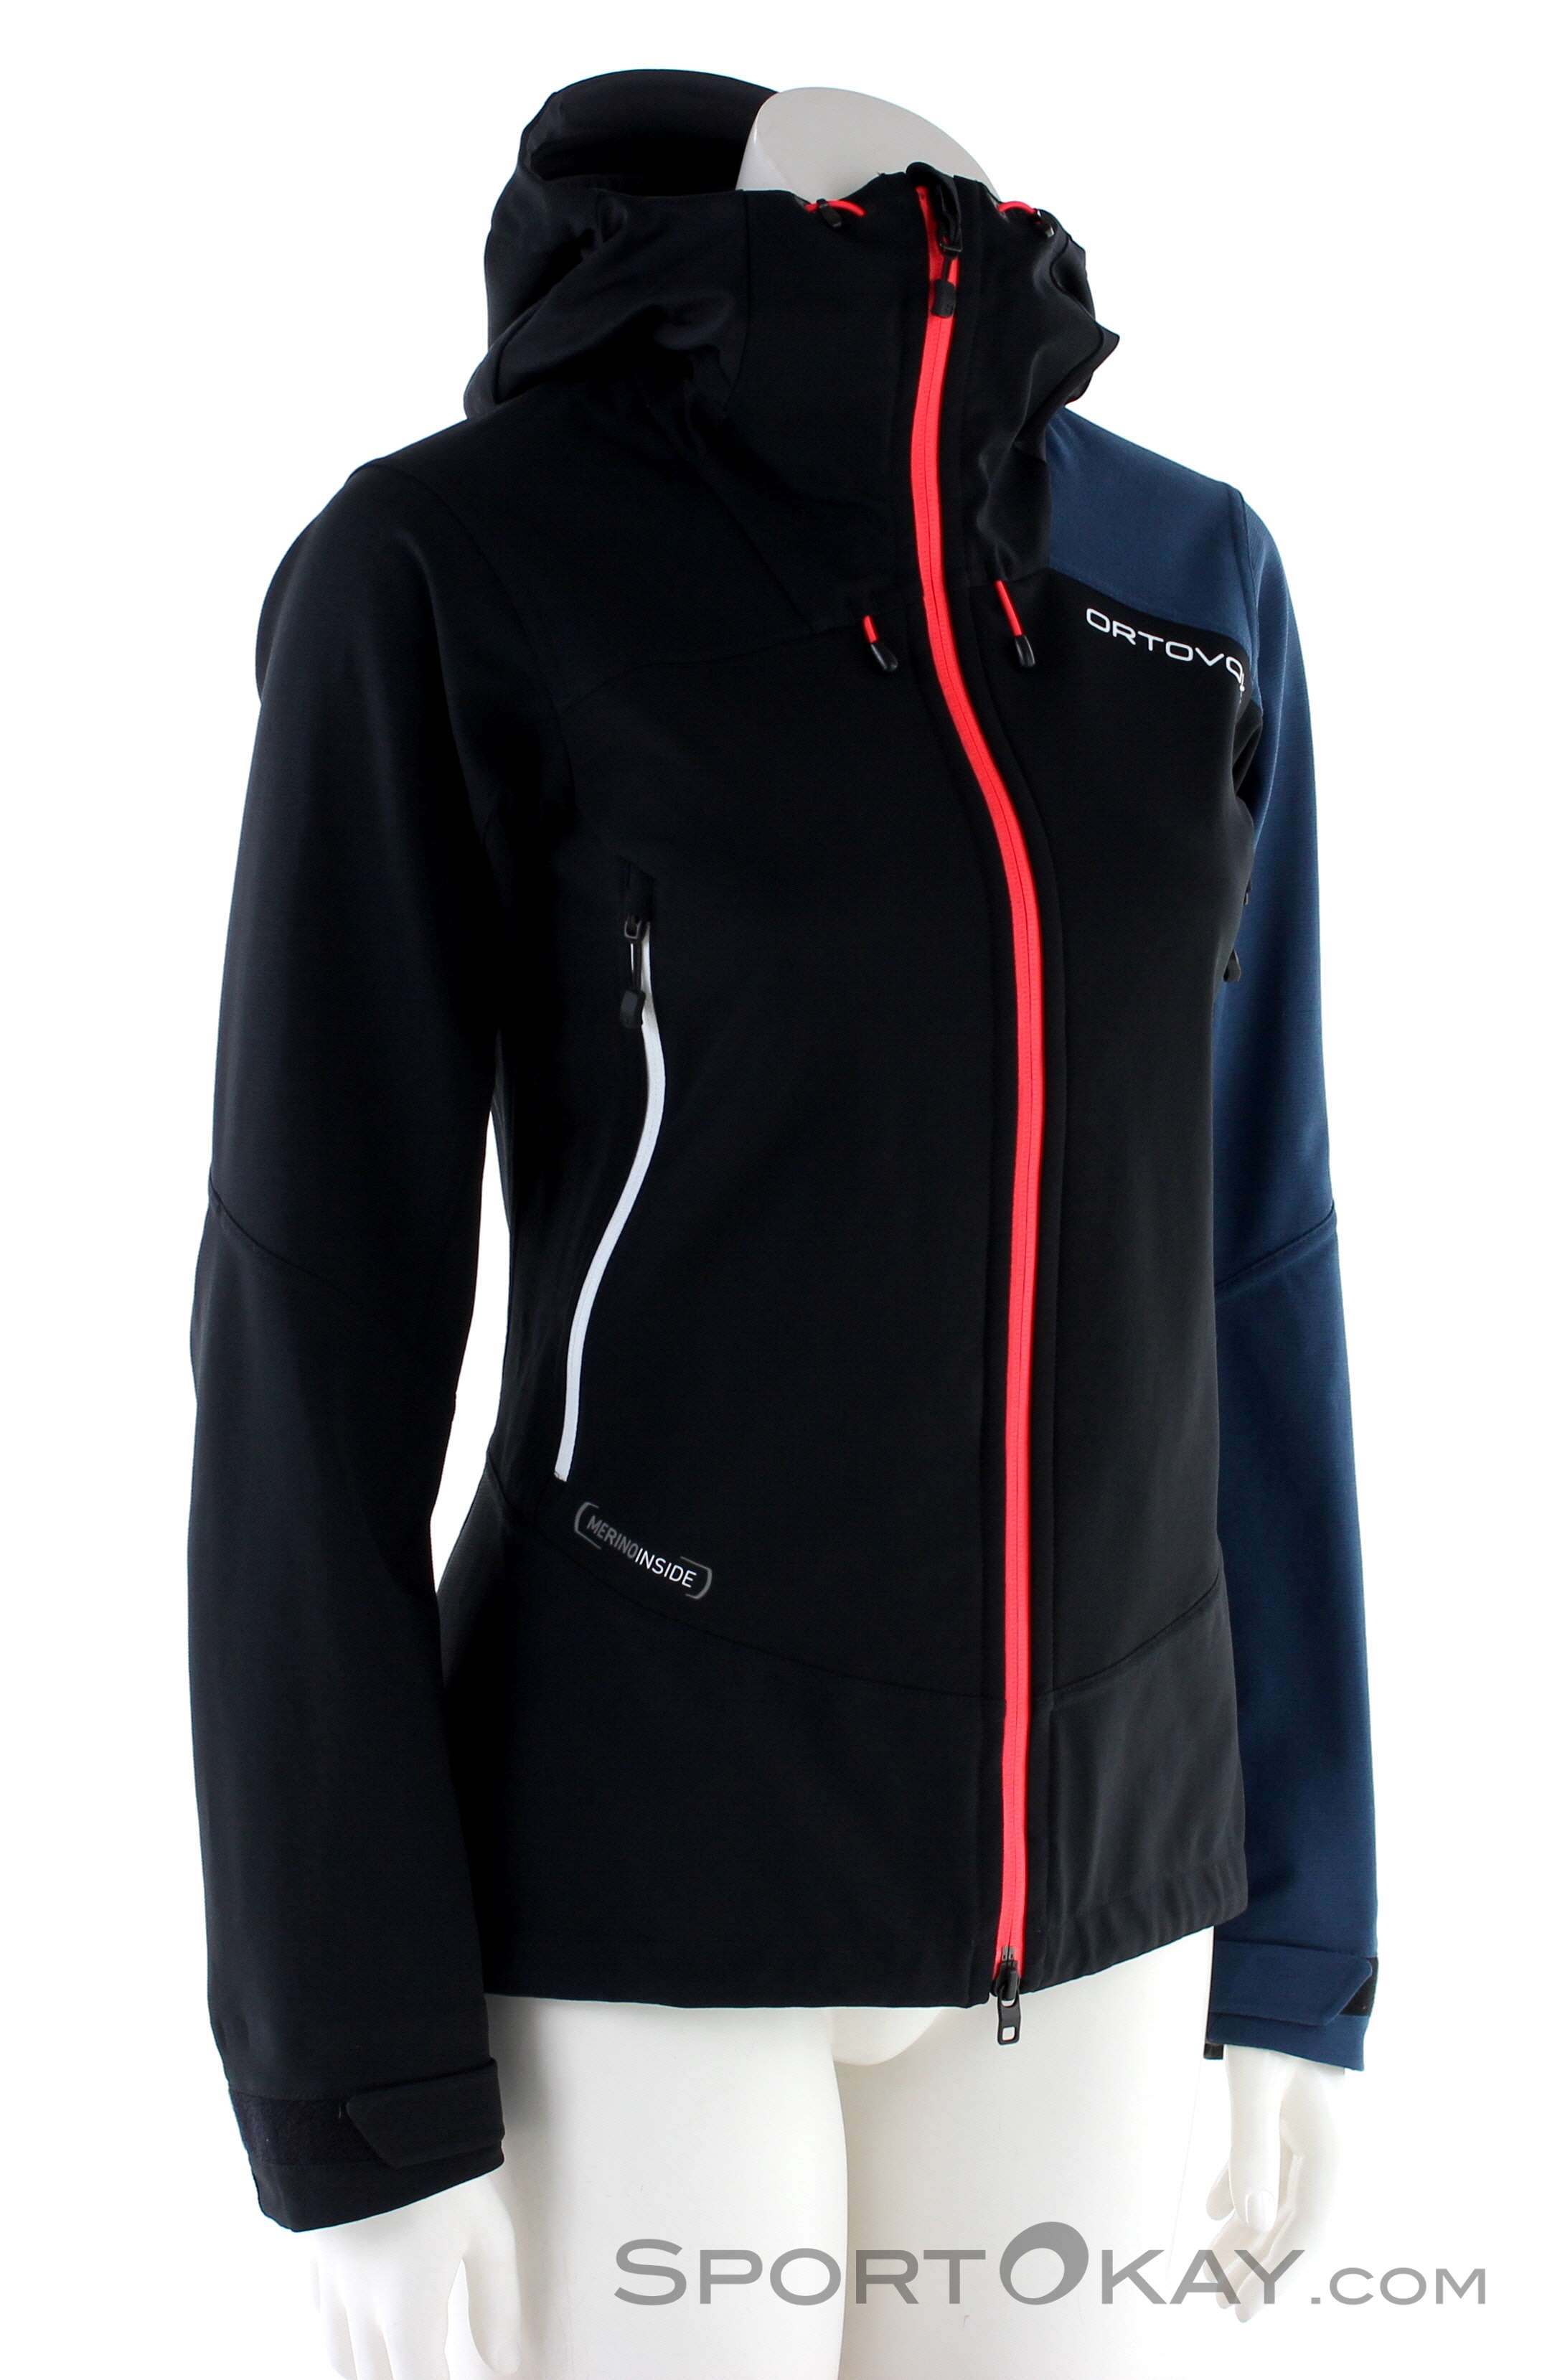 New Technicals Mens Speed Softshell Jacket Outdoor Clothing